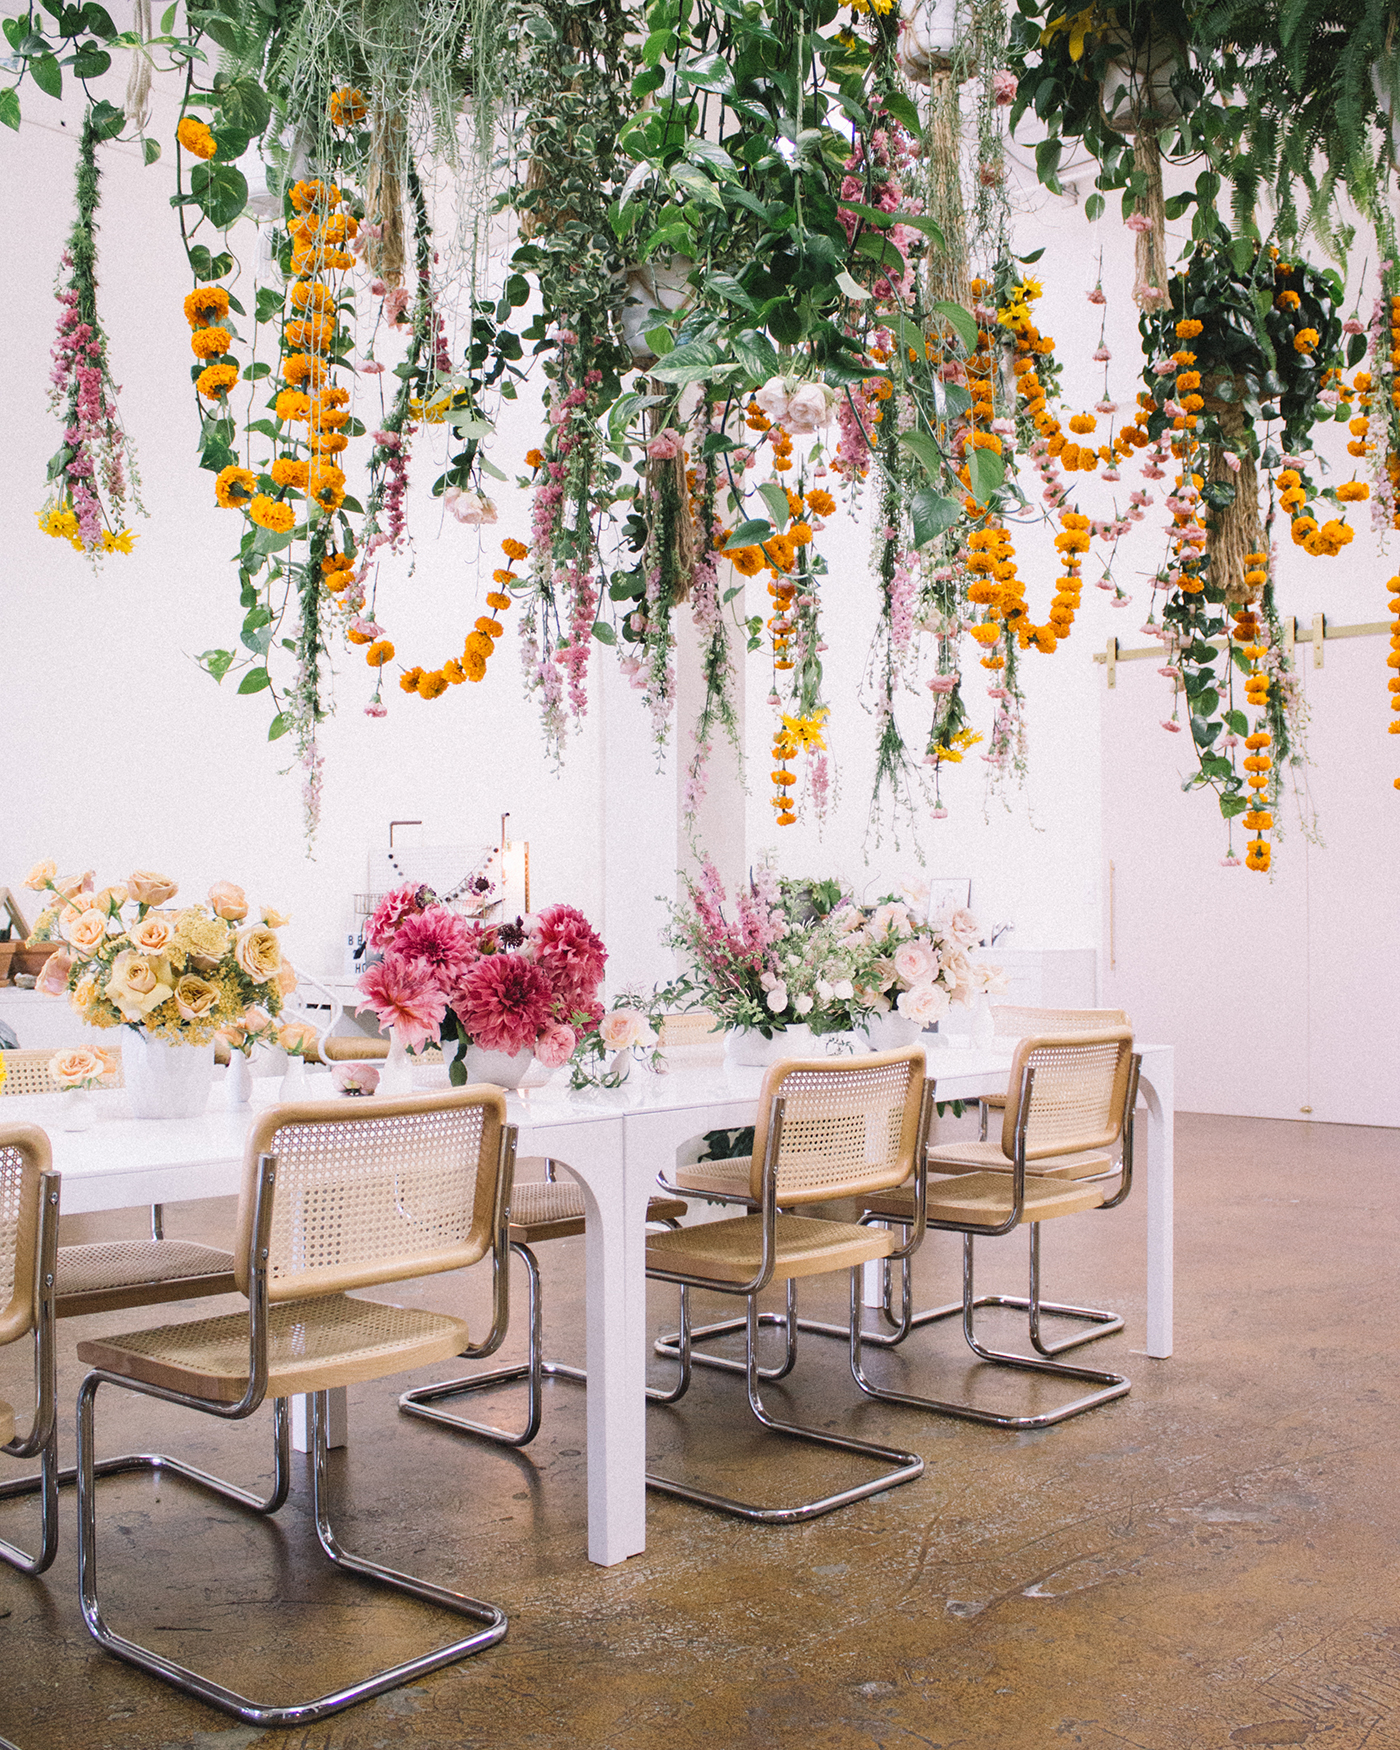 Love Is In The Air Hanging Floral Installation Ideas For The Wedding Green Wedding Shoes